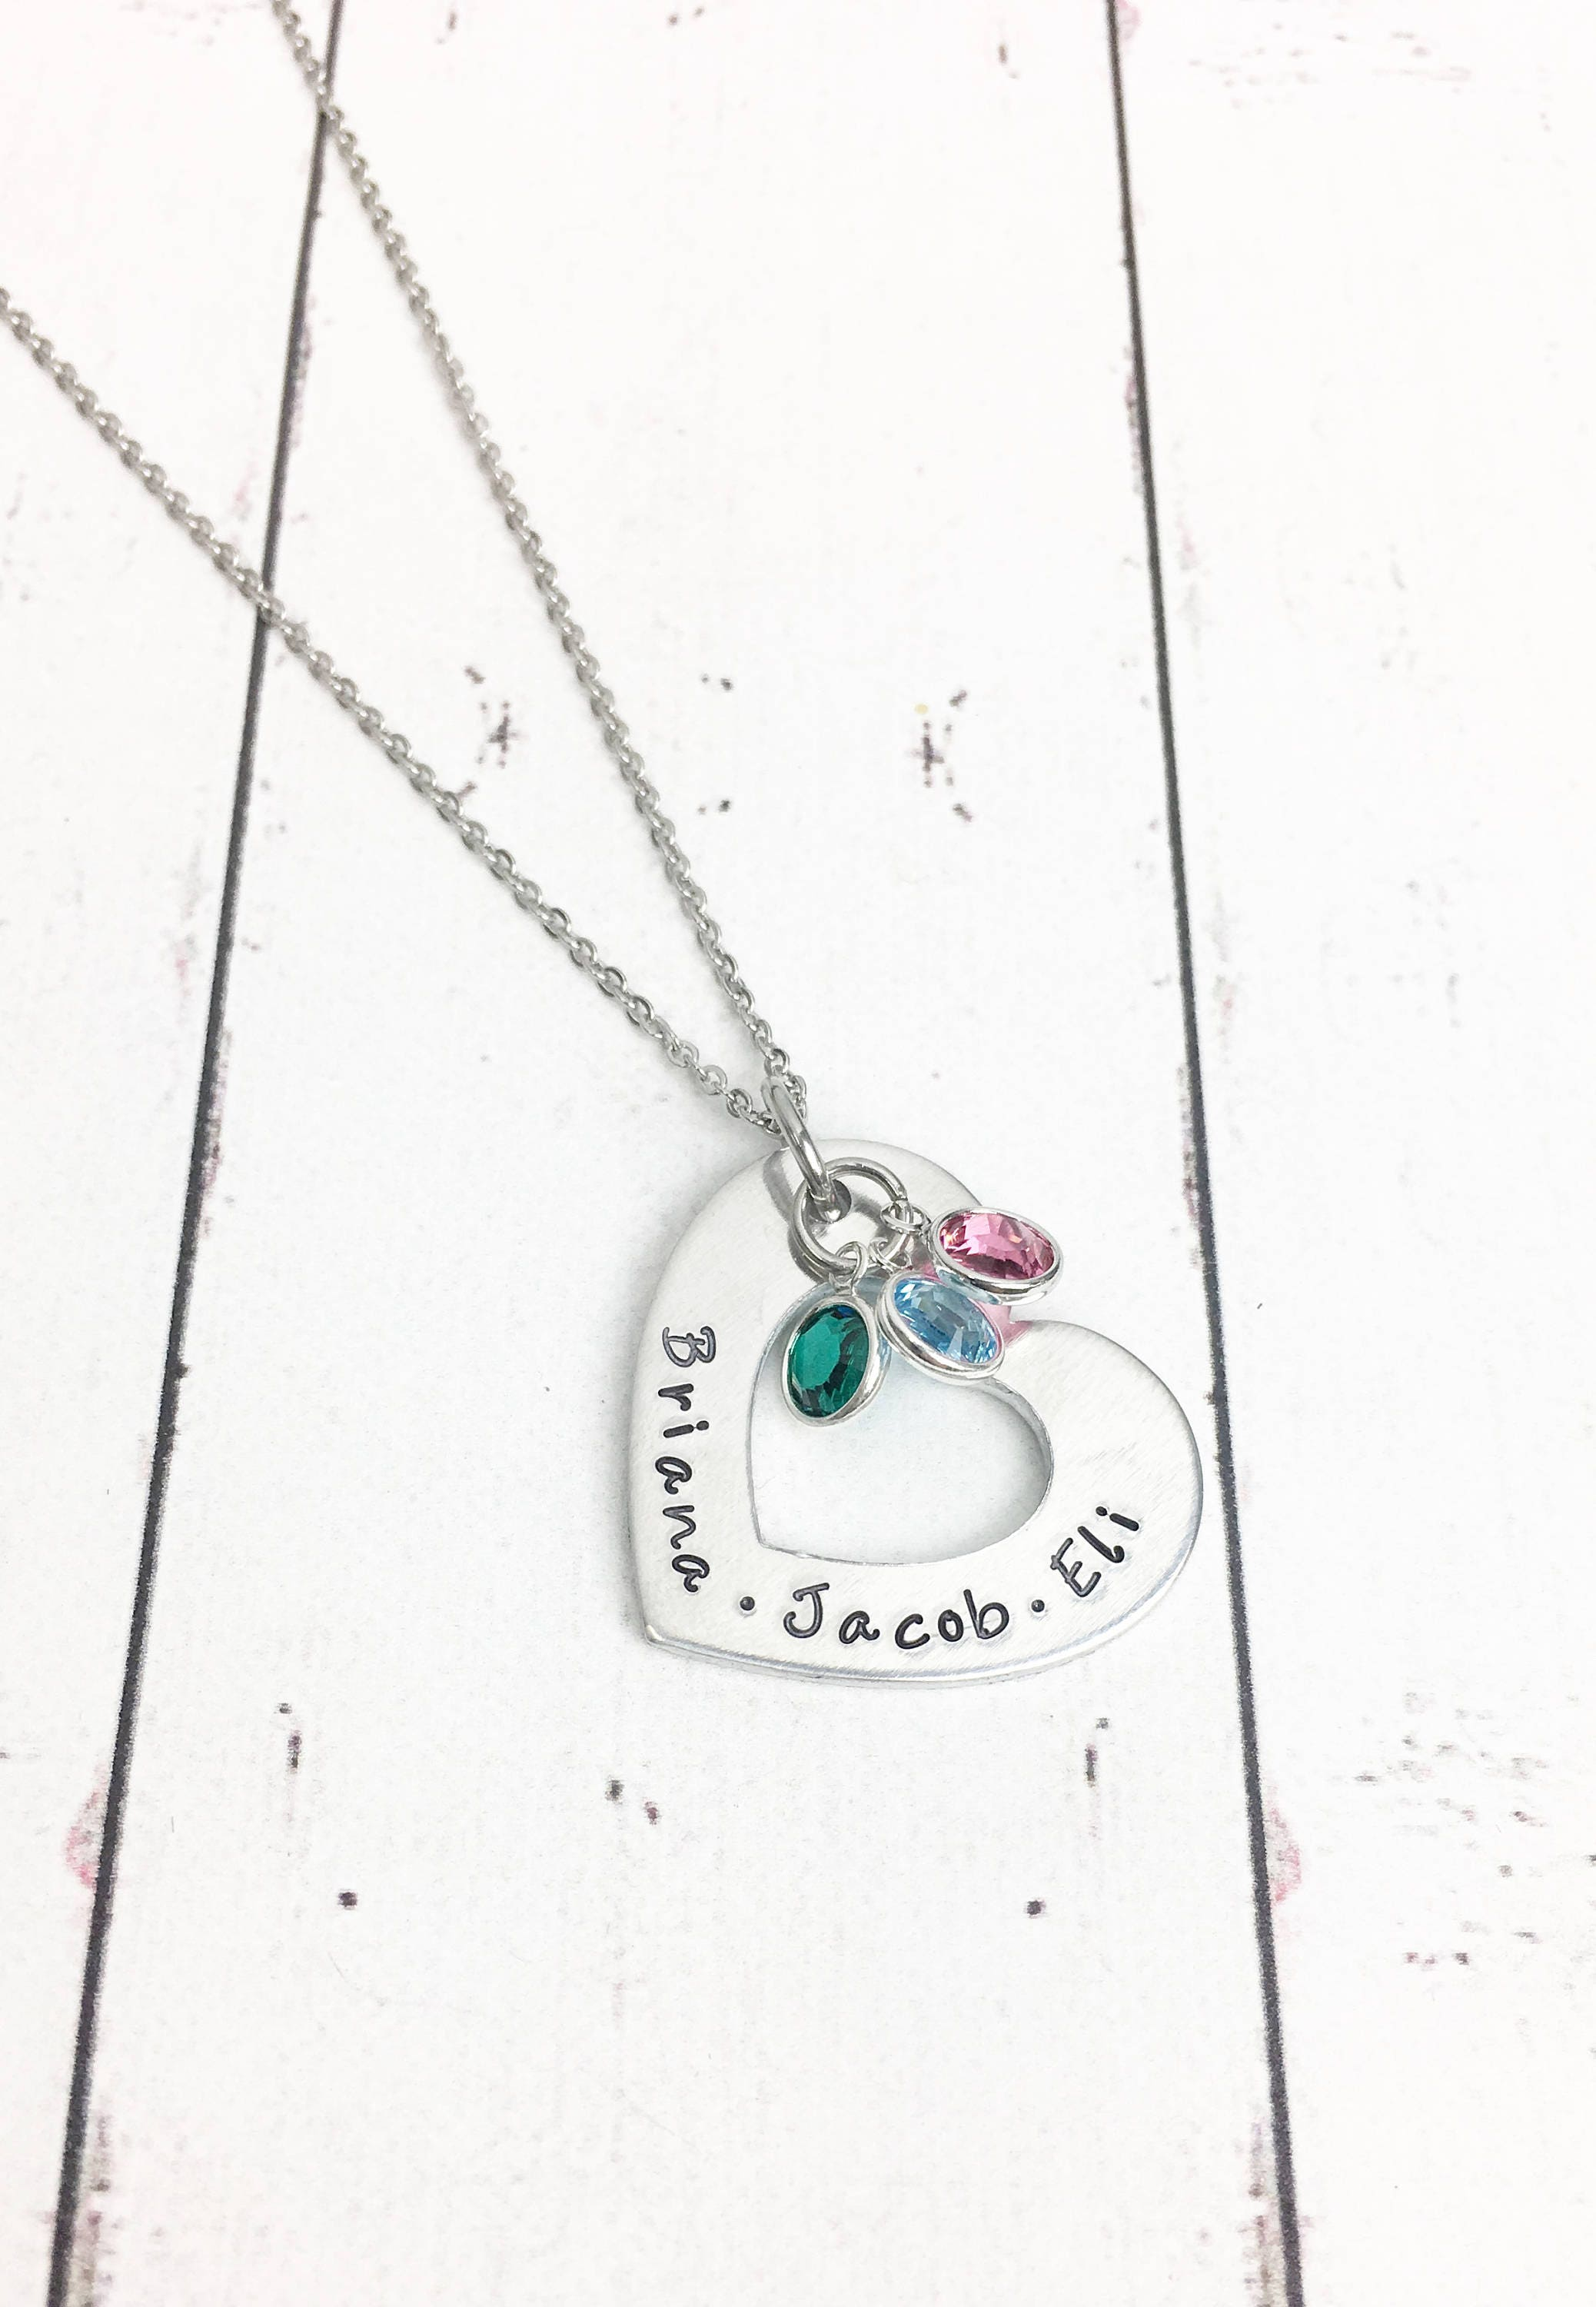 crystals grandkids swarovski grandkid grandmothers hand grandma necklace birthstone pin stamped with